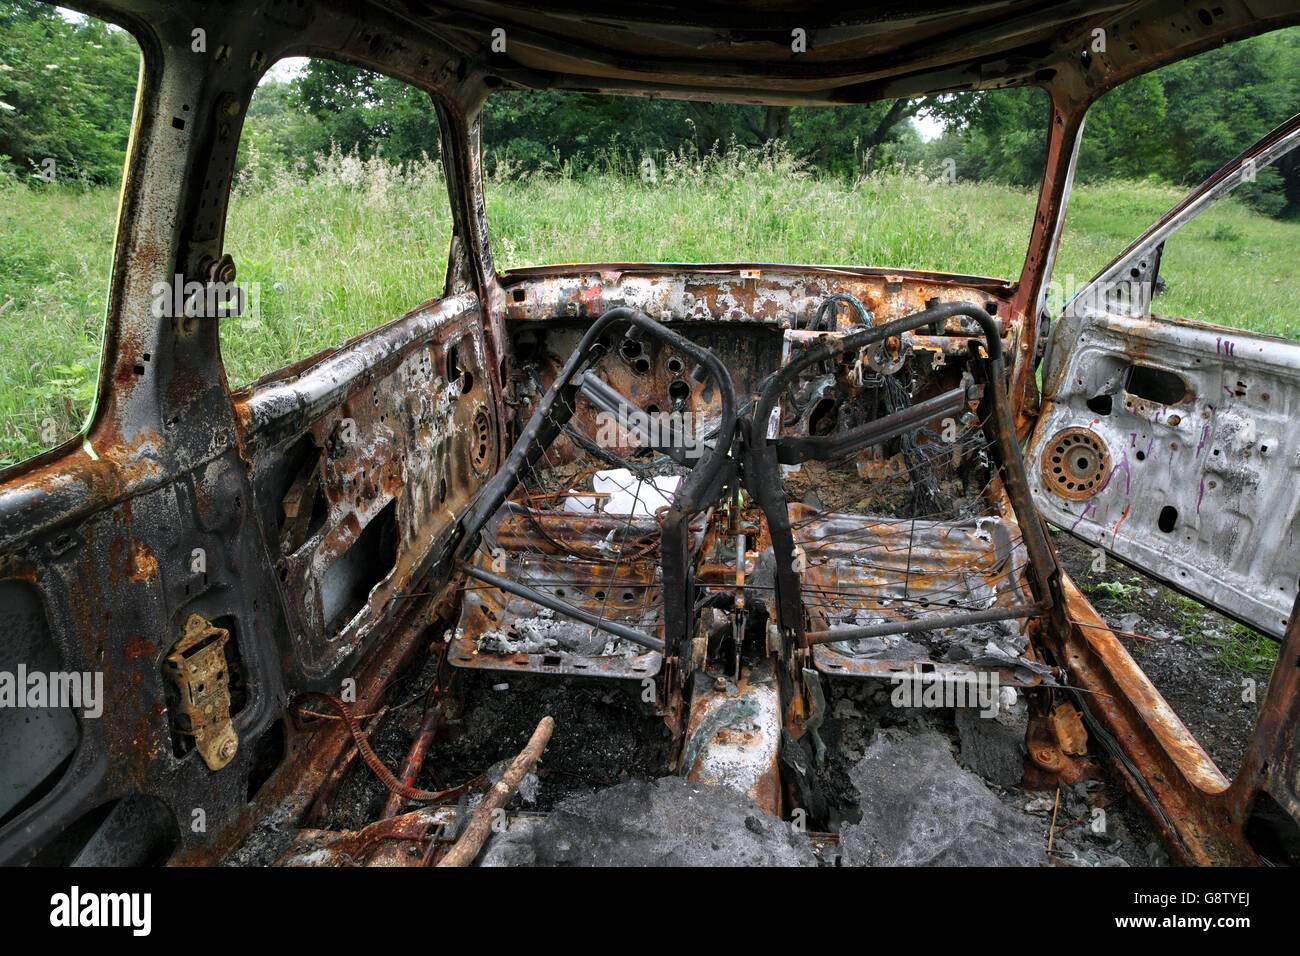 Abandoned and burned out car on the Downs near Brighton. - Stock Image